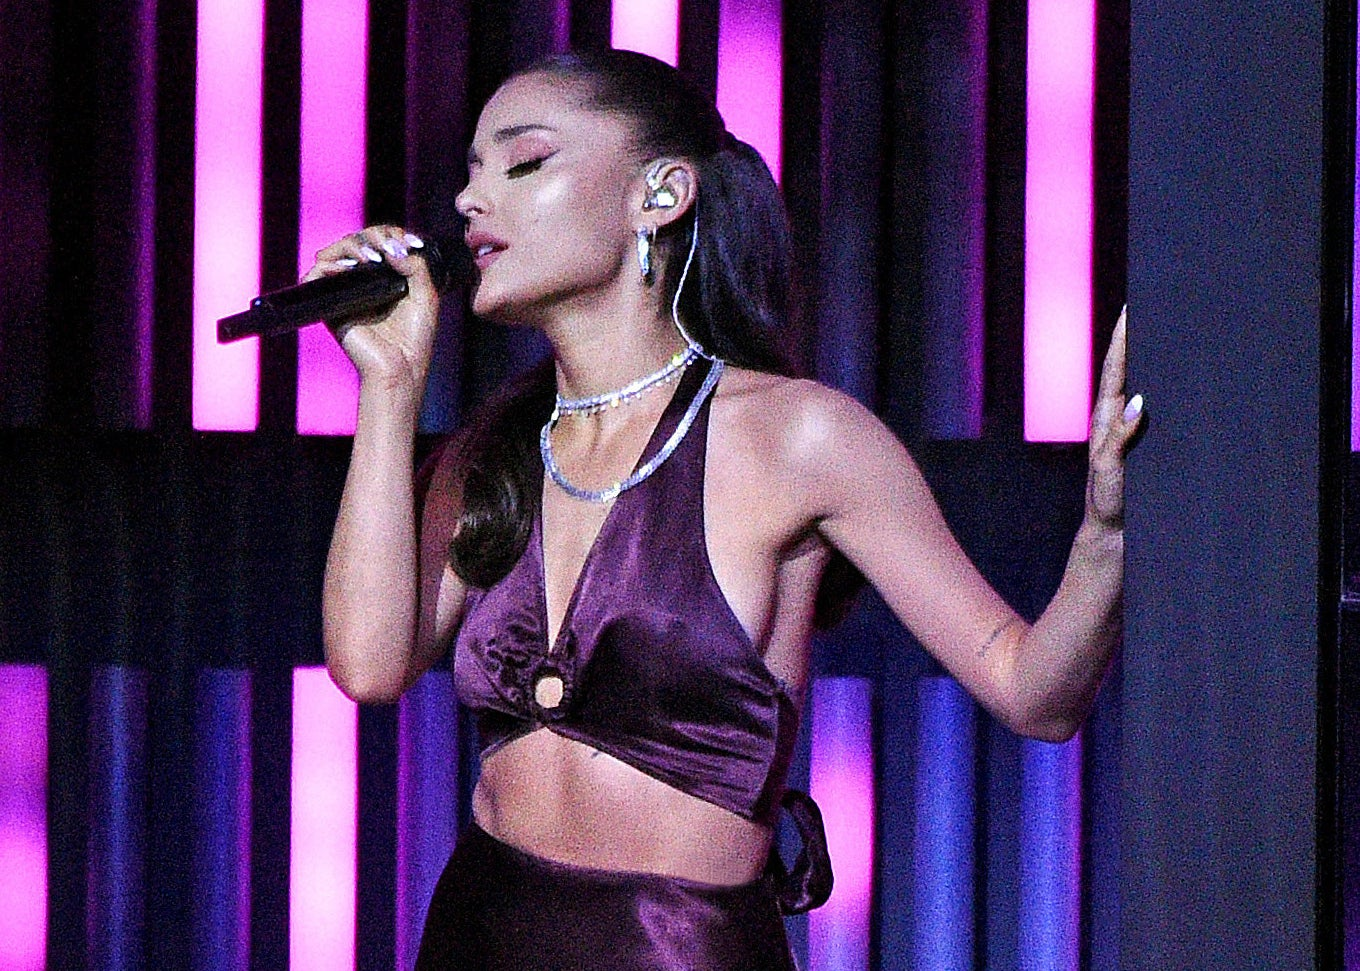 Ariana performs with no tattoos in sight